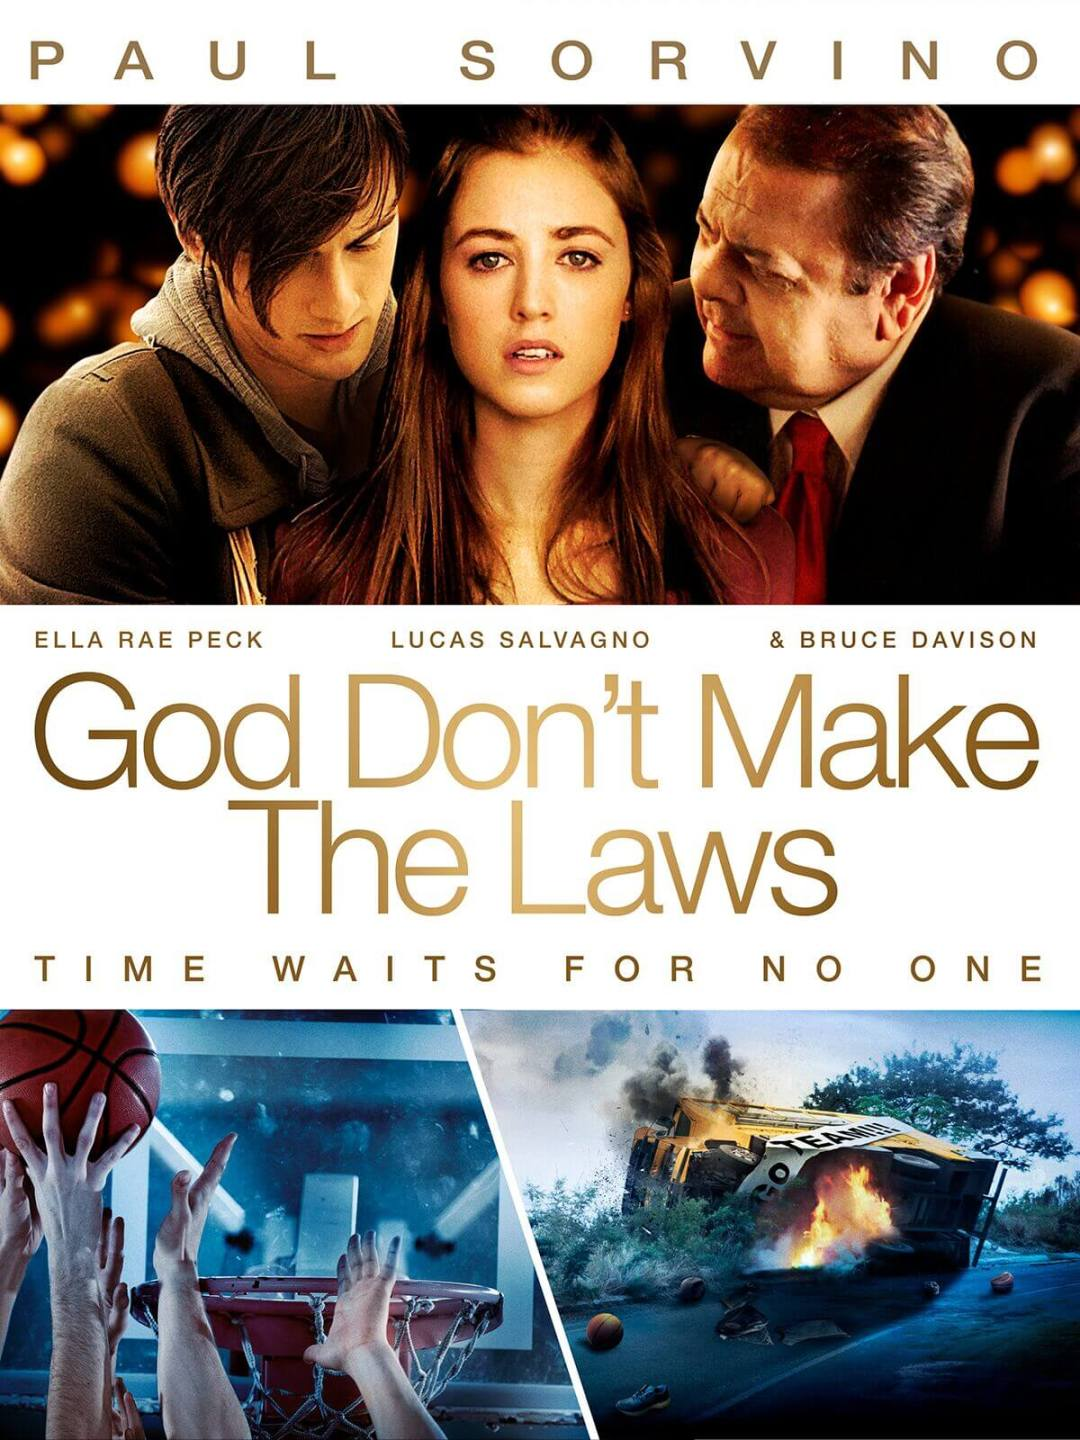 God Dont Make the Laws 1200x1600 GOD DONT MAKE THE LAWS